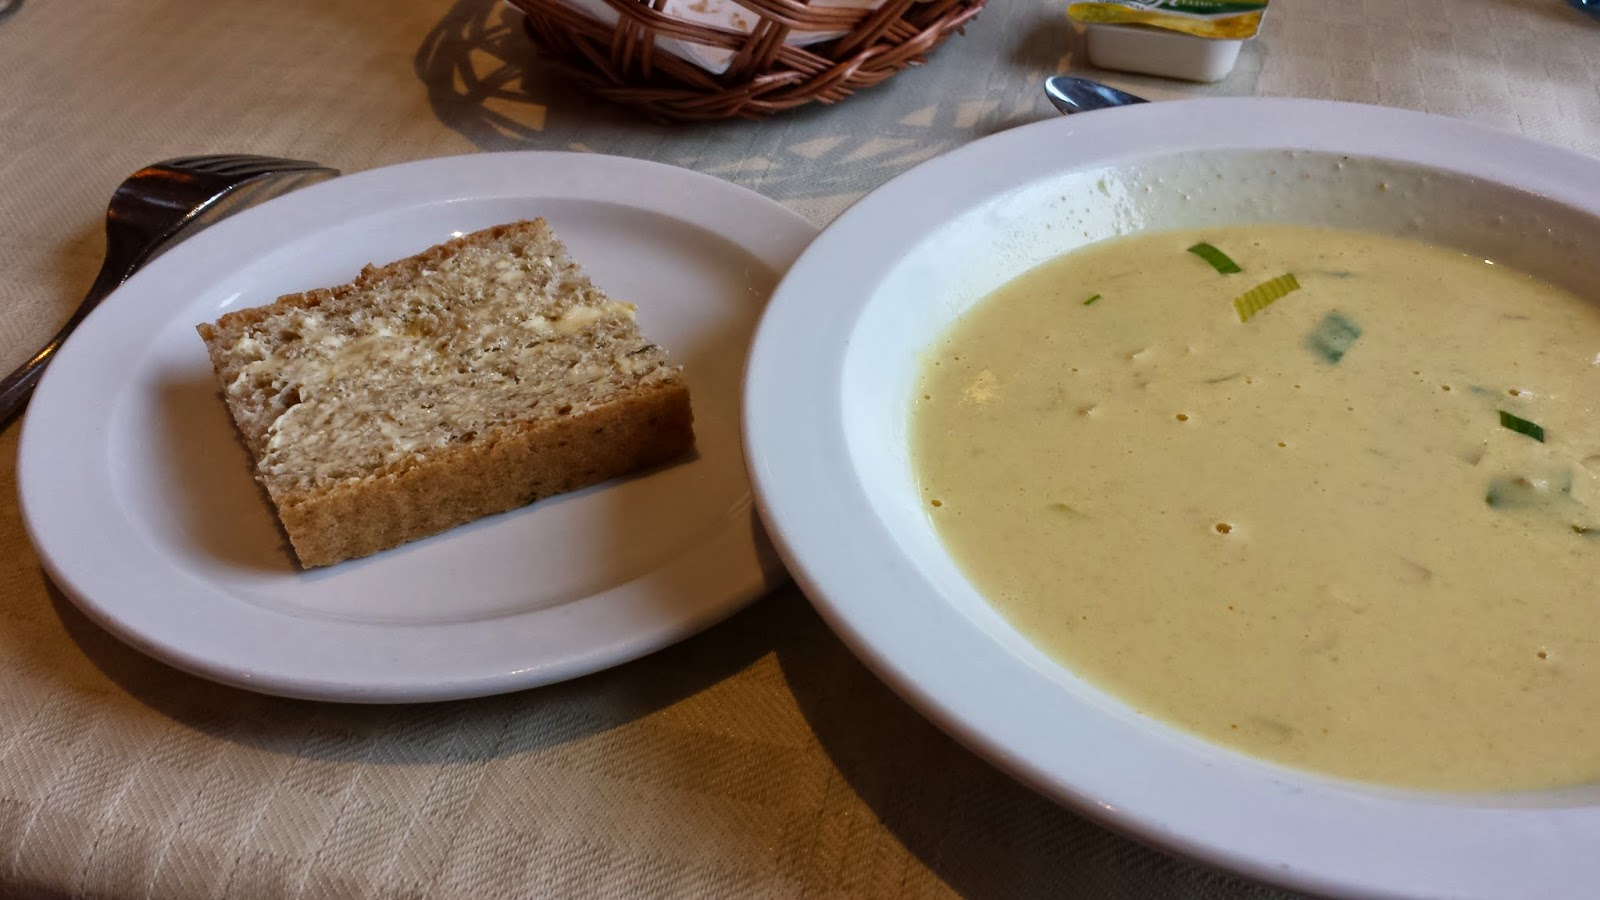 Inderoy soup recipes